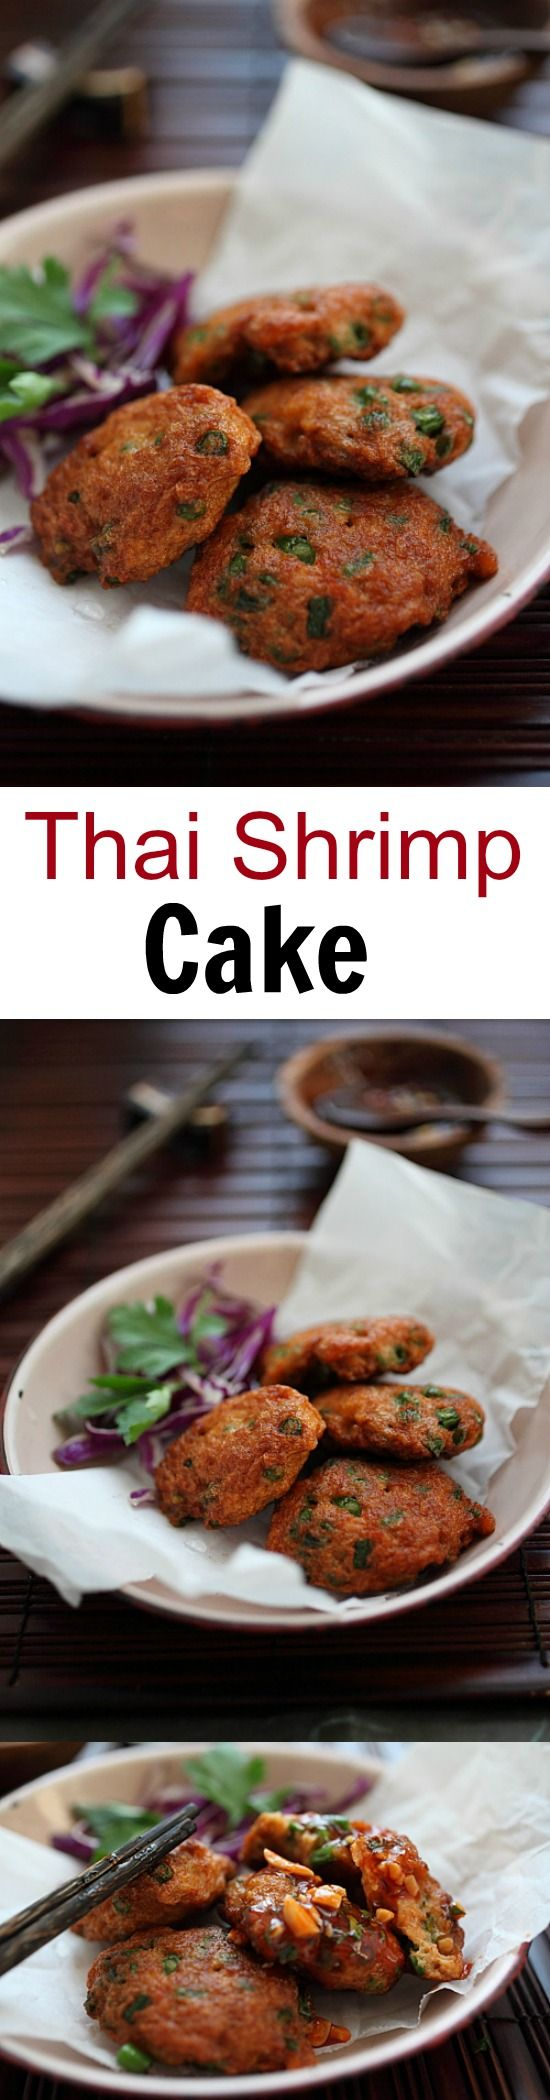 Thai Shrimp Cake - the most amazing and delicious Thai shrimp cake ever, with sweet chili sauce. Get the easy recipe now!! | rasamalaysia.com  http://carers.xyz